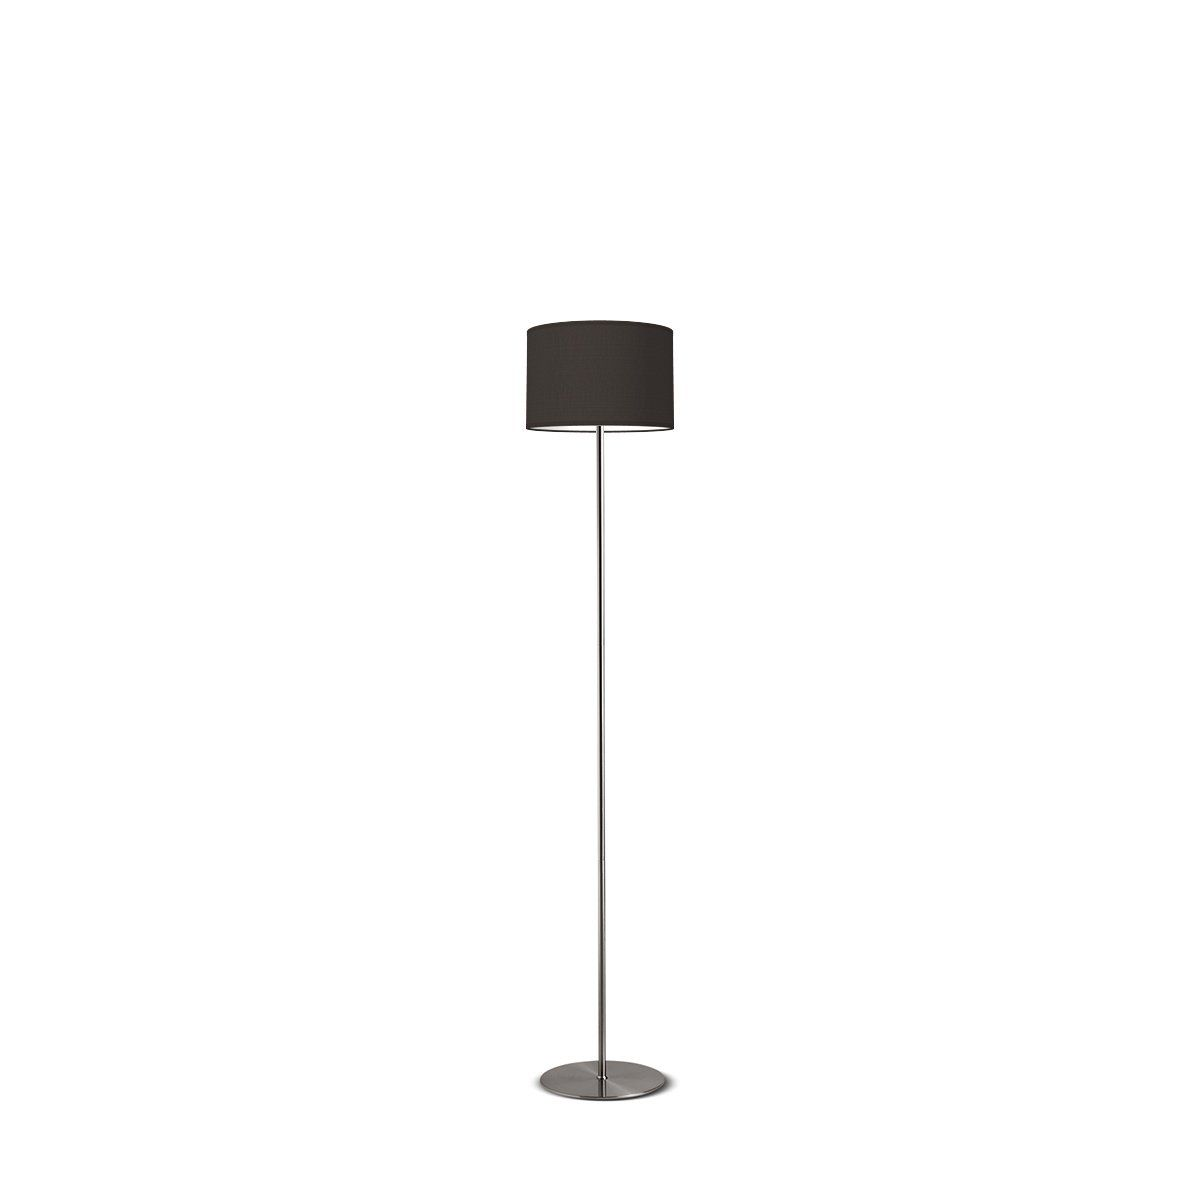 HOME SWEET HOME vloerlamp lift bling Ø 30 cm - Night black